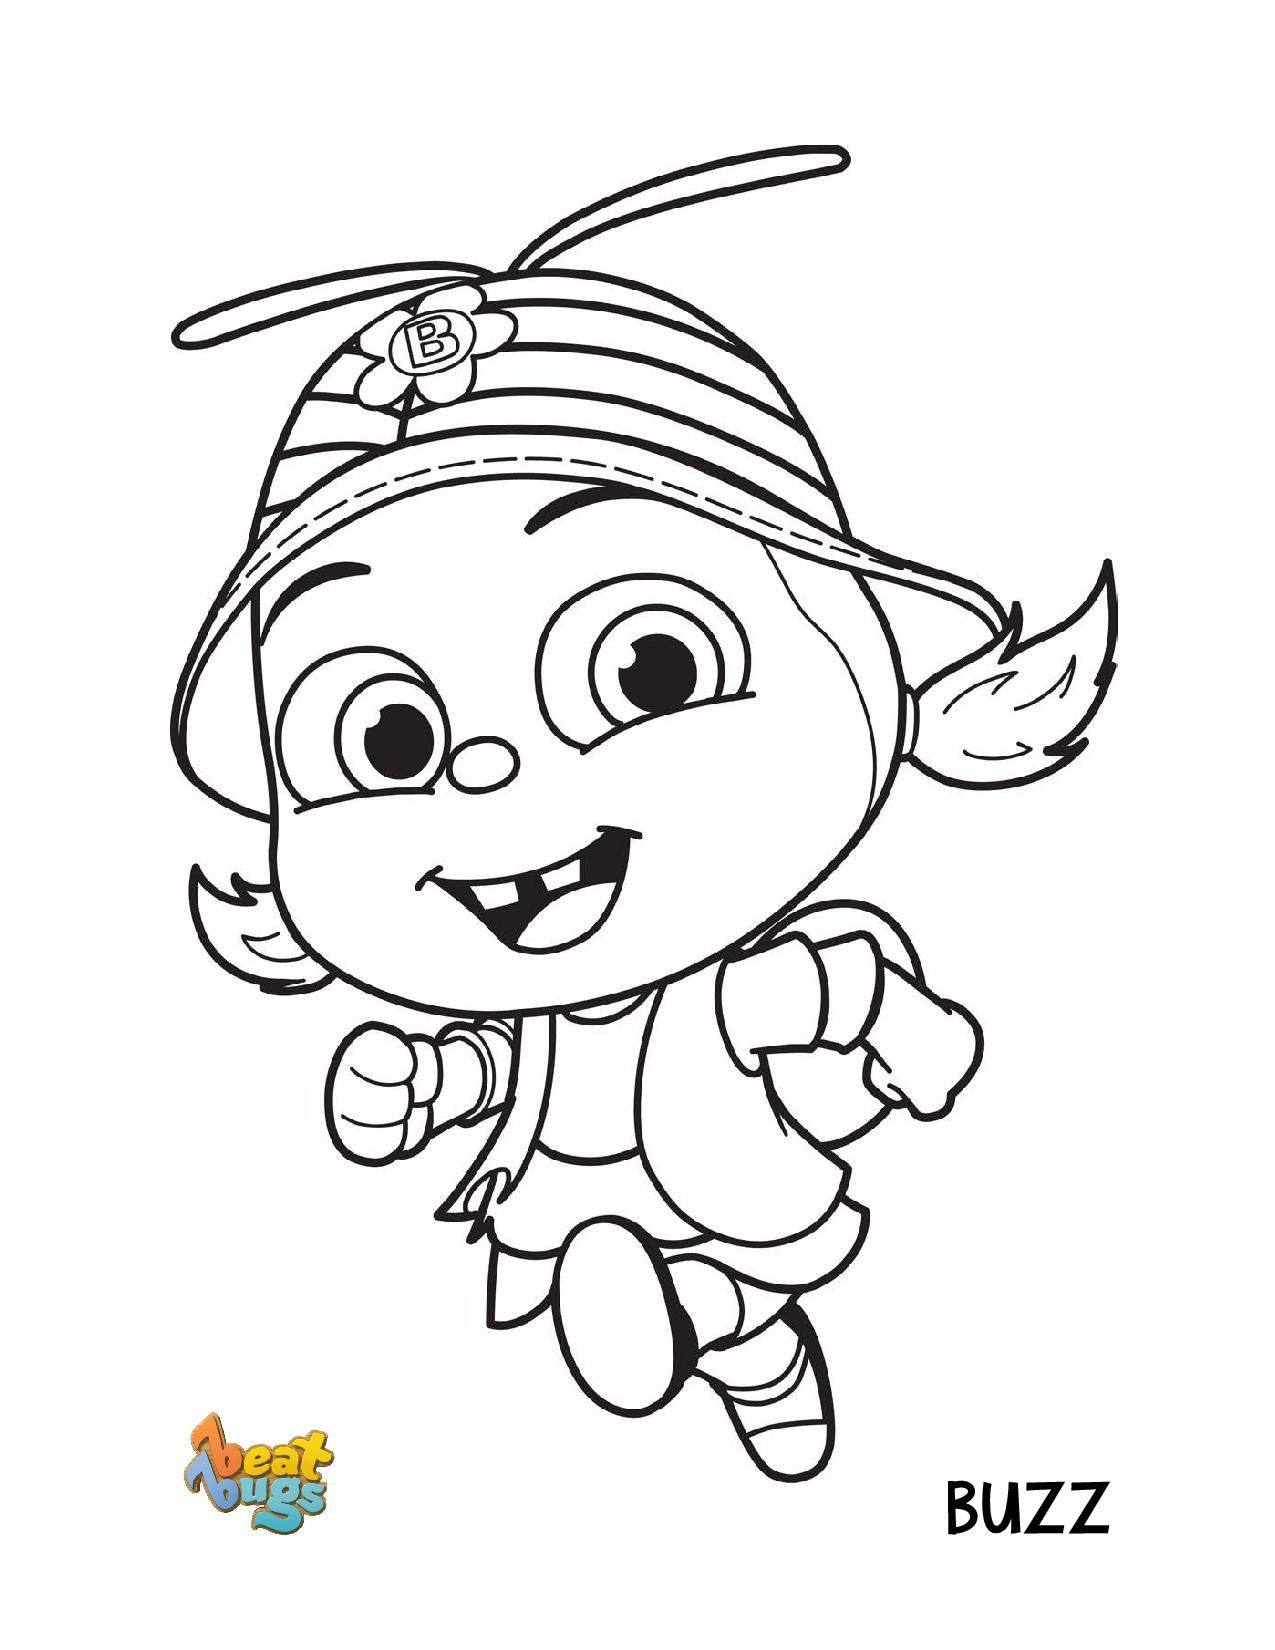 Buzz from Beat Bugs Printable for